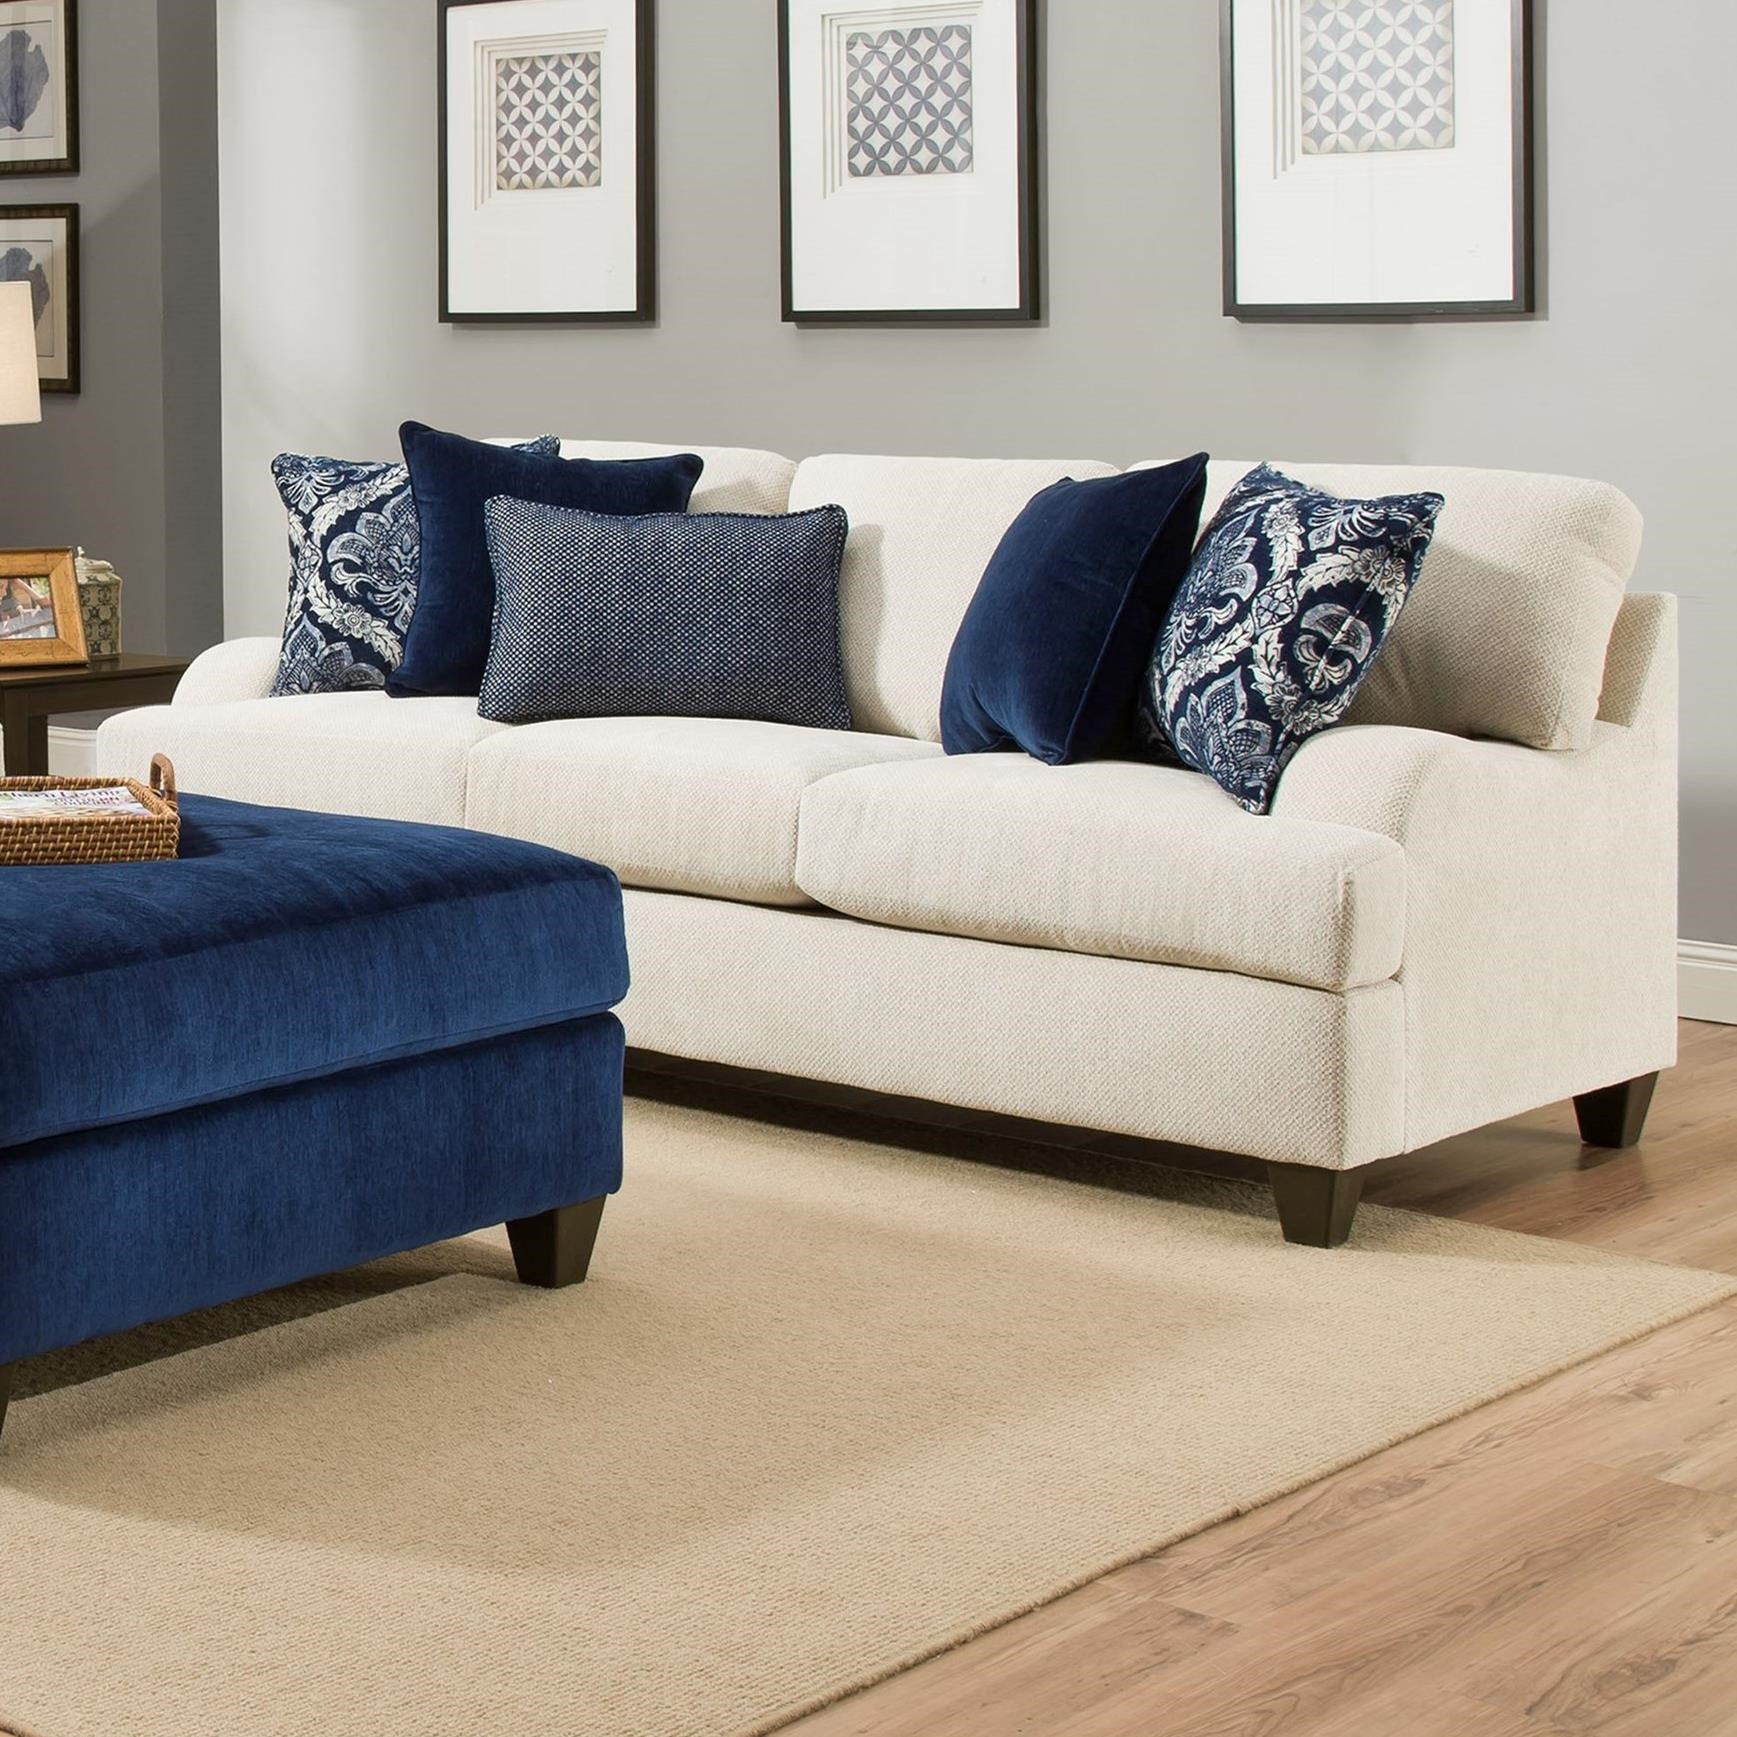 4002 Transitional Sofa by United Furniture Industries at Dream Home Interiors